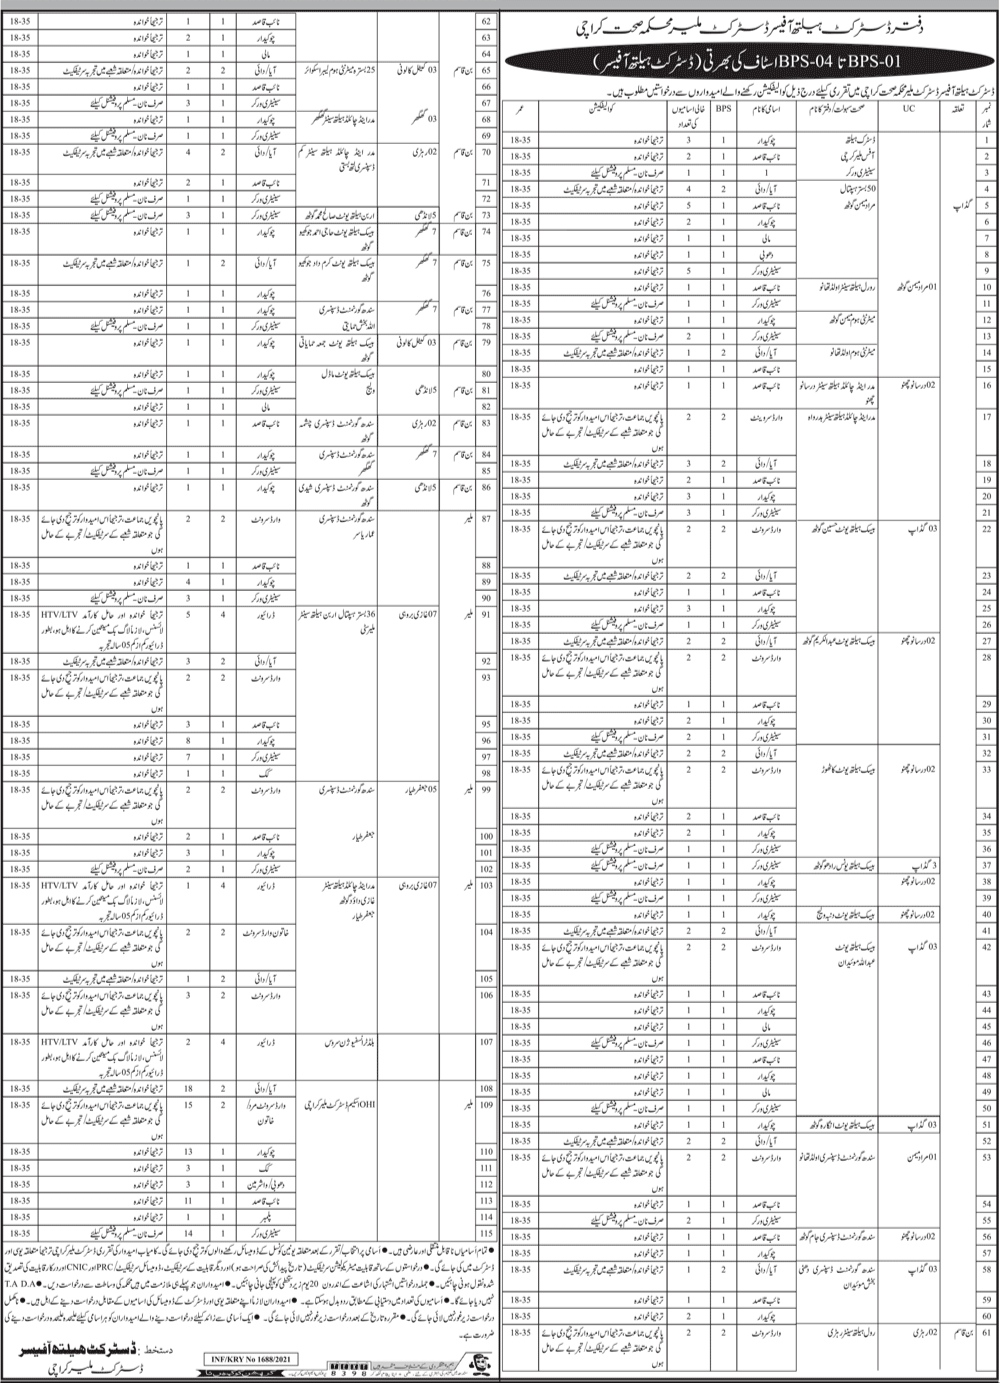 Office Of The District Health Officer DHO Malir Karachi Jobs 2021